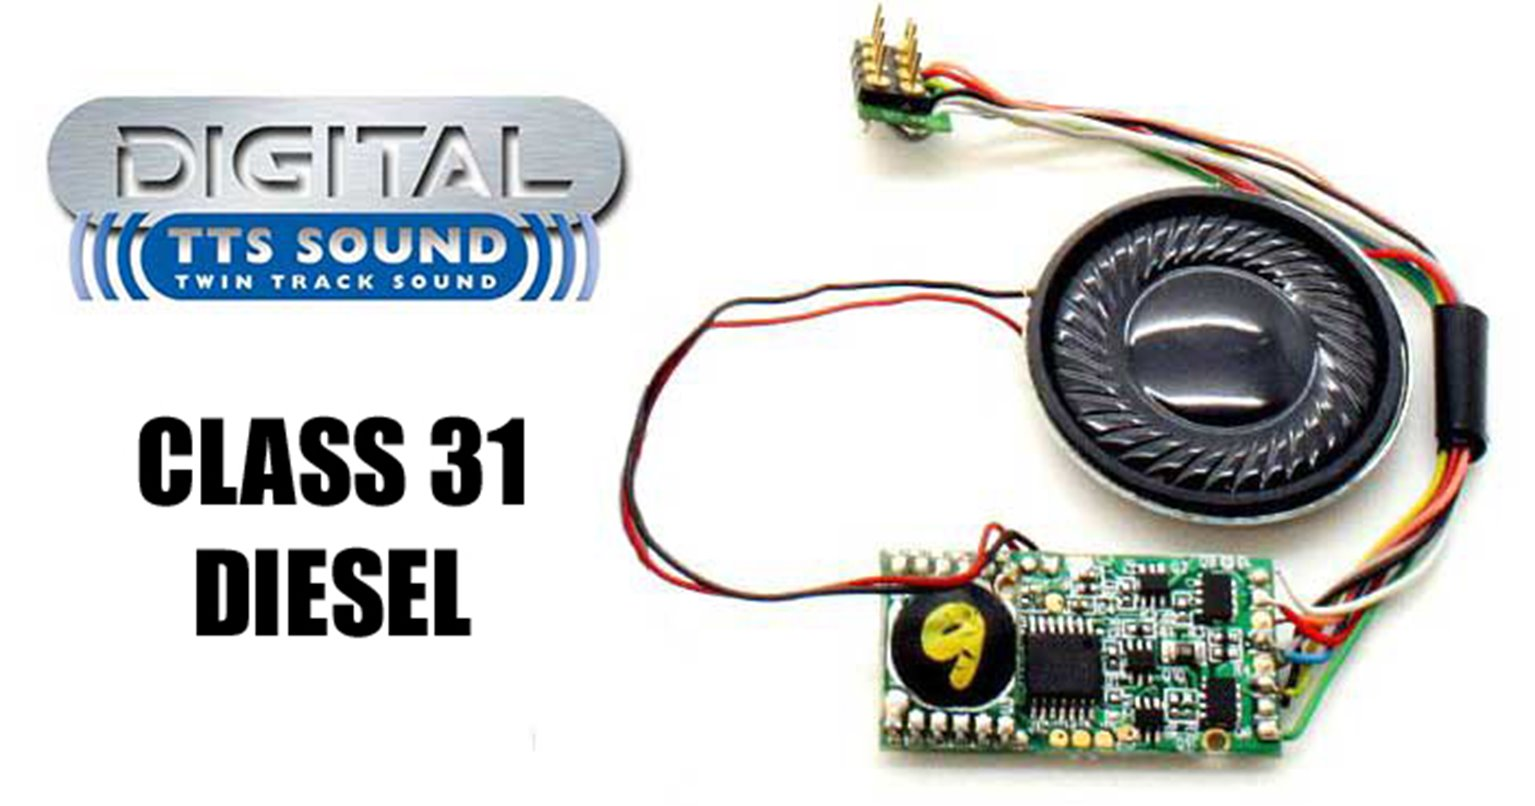 TTS Digital Sound Chip (8pin) with Class 31 Diesel Sounds